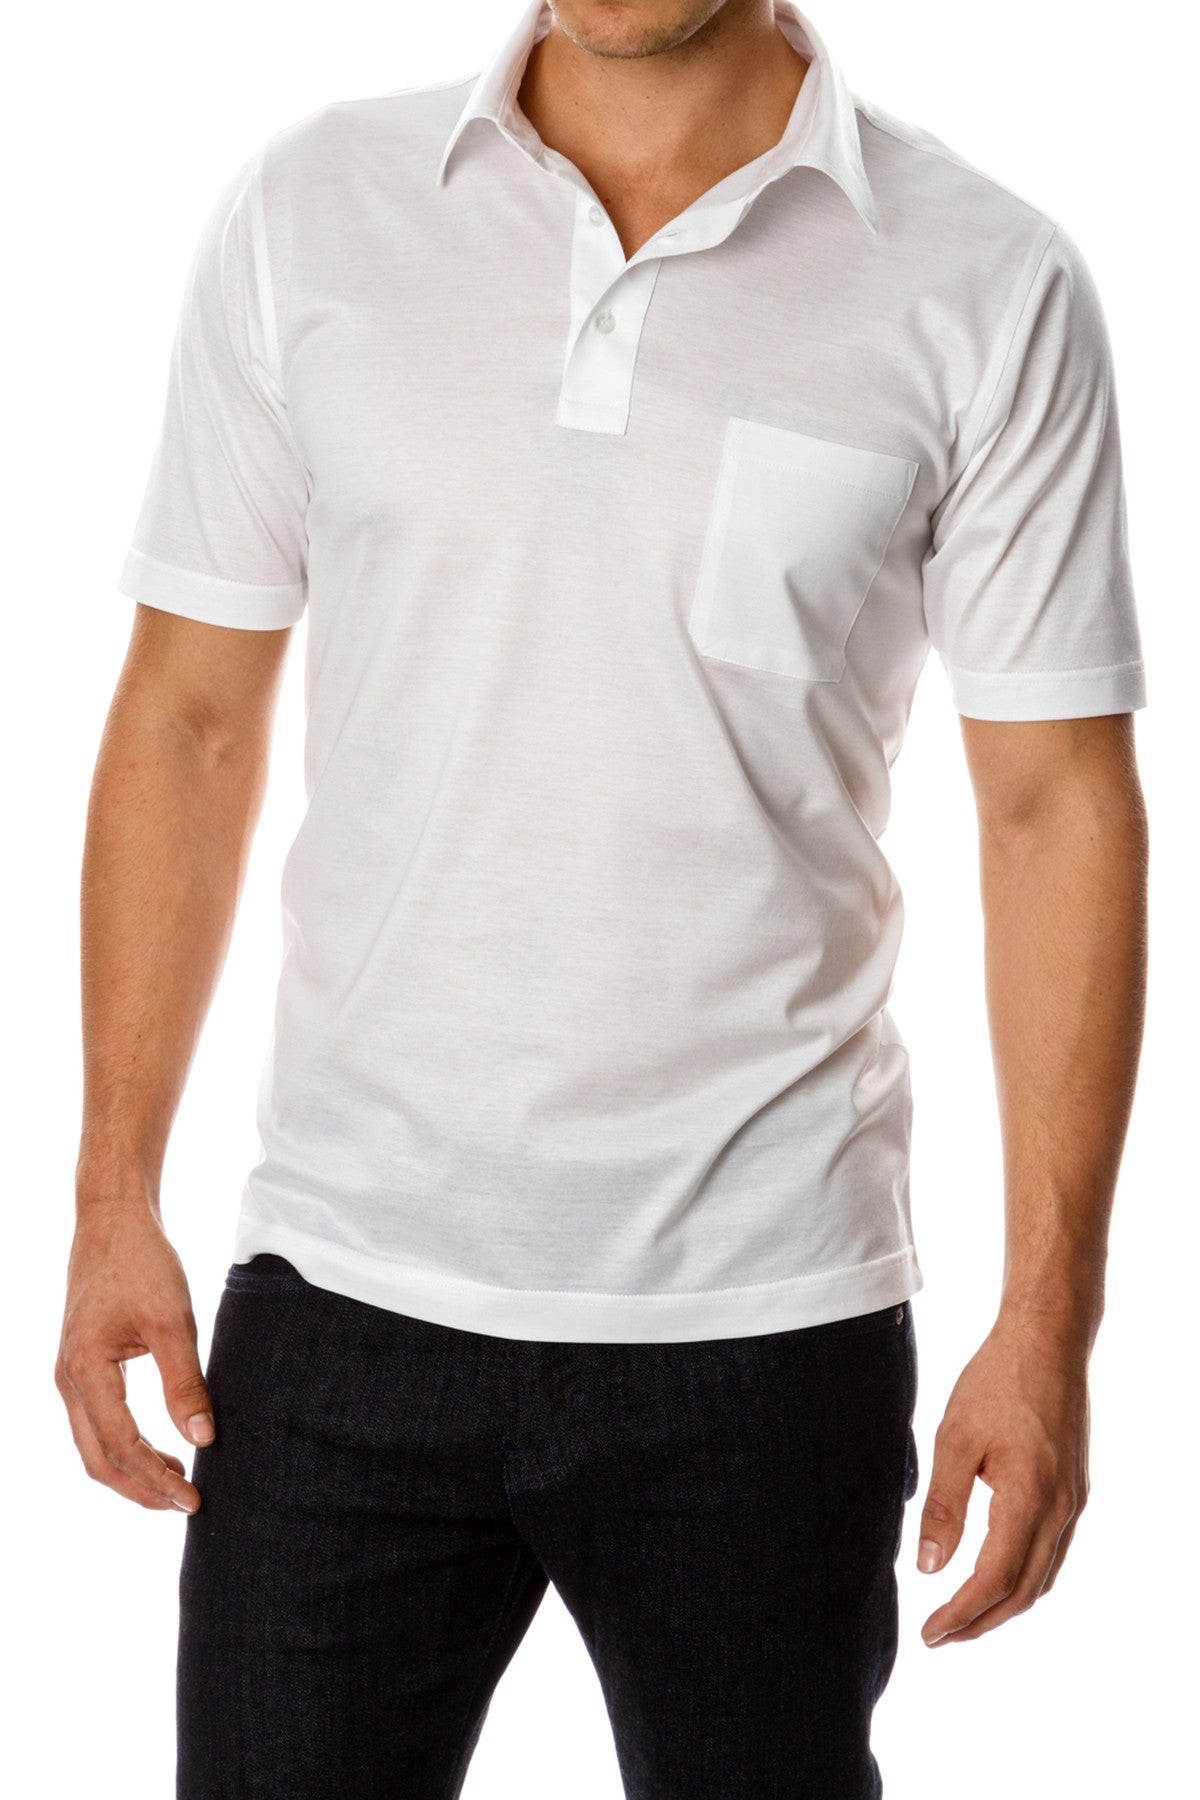 David August Mercerized Cotton White Polo